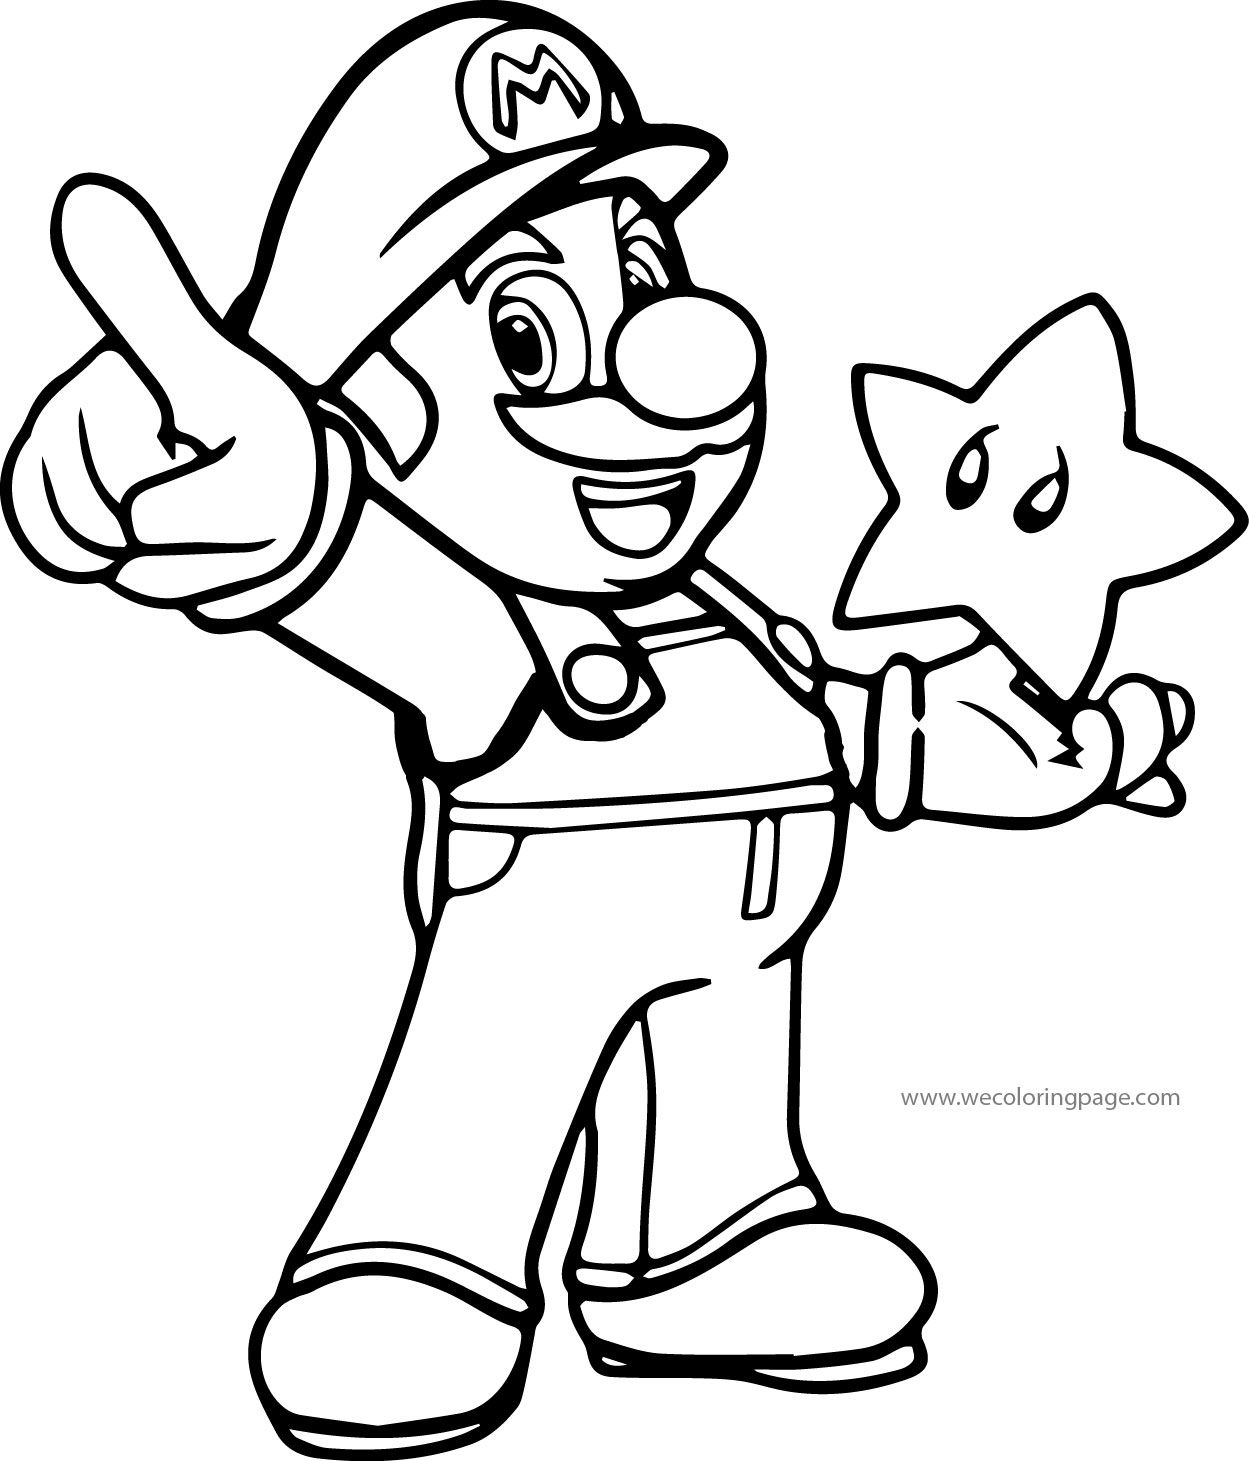 Super Mario Coloring Page Moldes Super Mario Coloring Pages